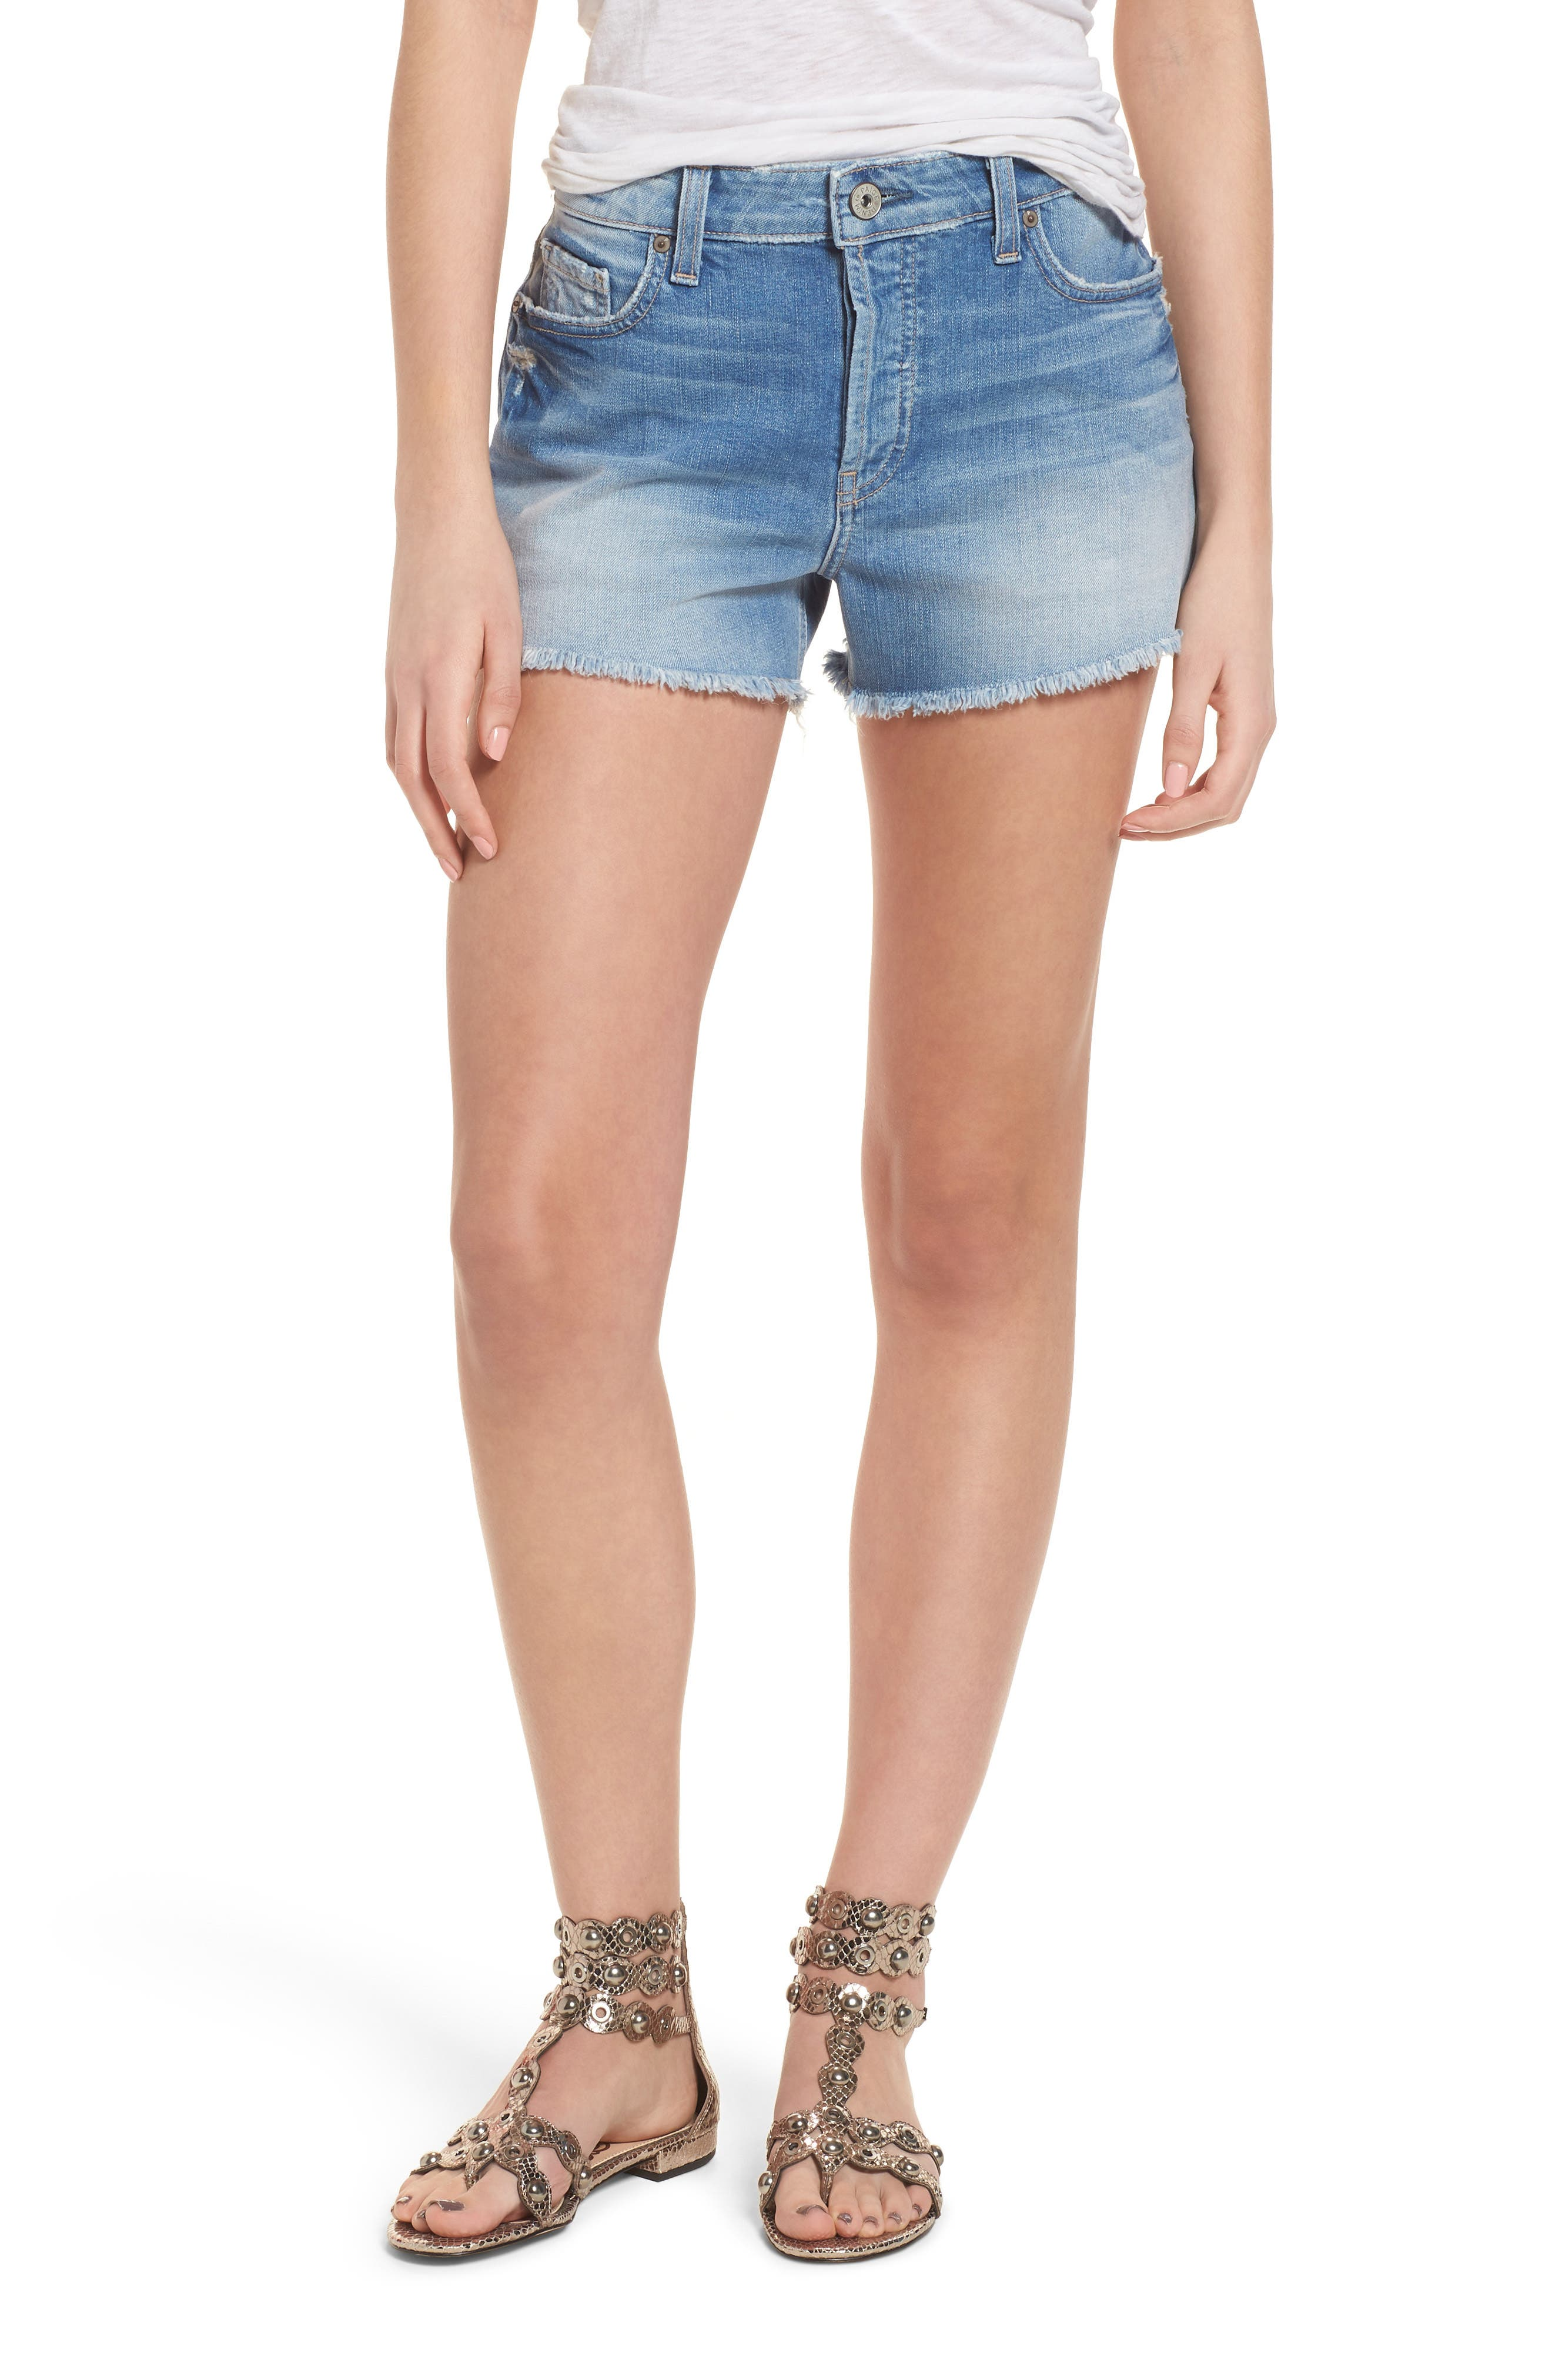 Emmitt High Waist Cutoff Denim Shorts,                             Main thumbnail 1, color,                             JANIS DESTRUCTED